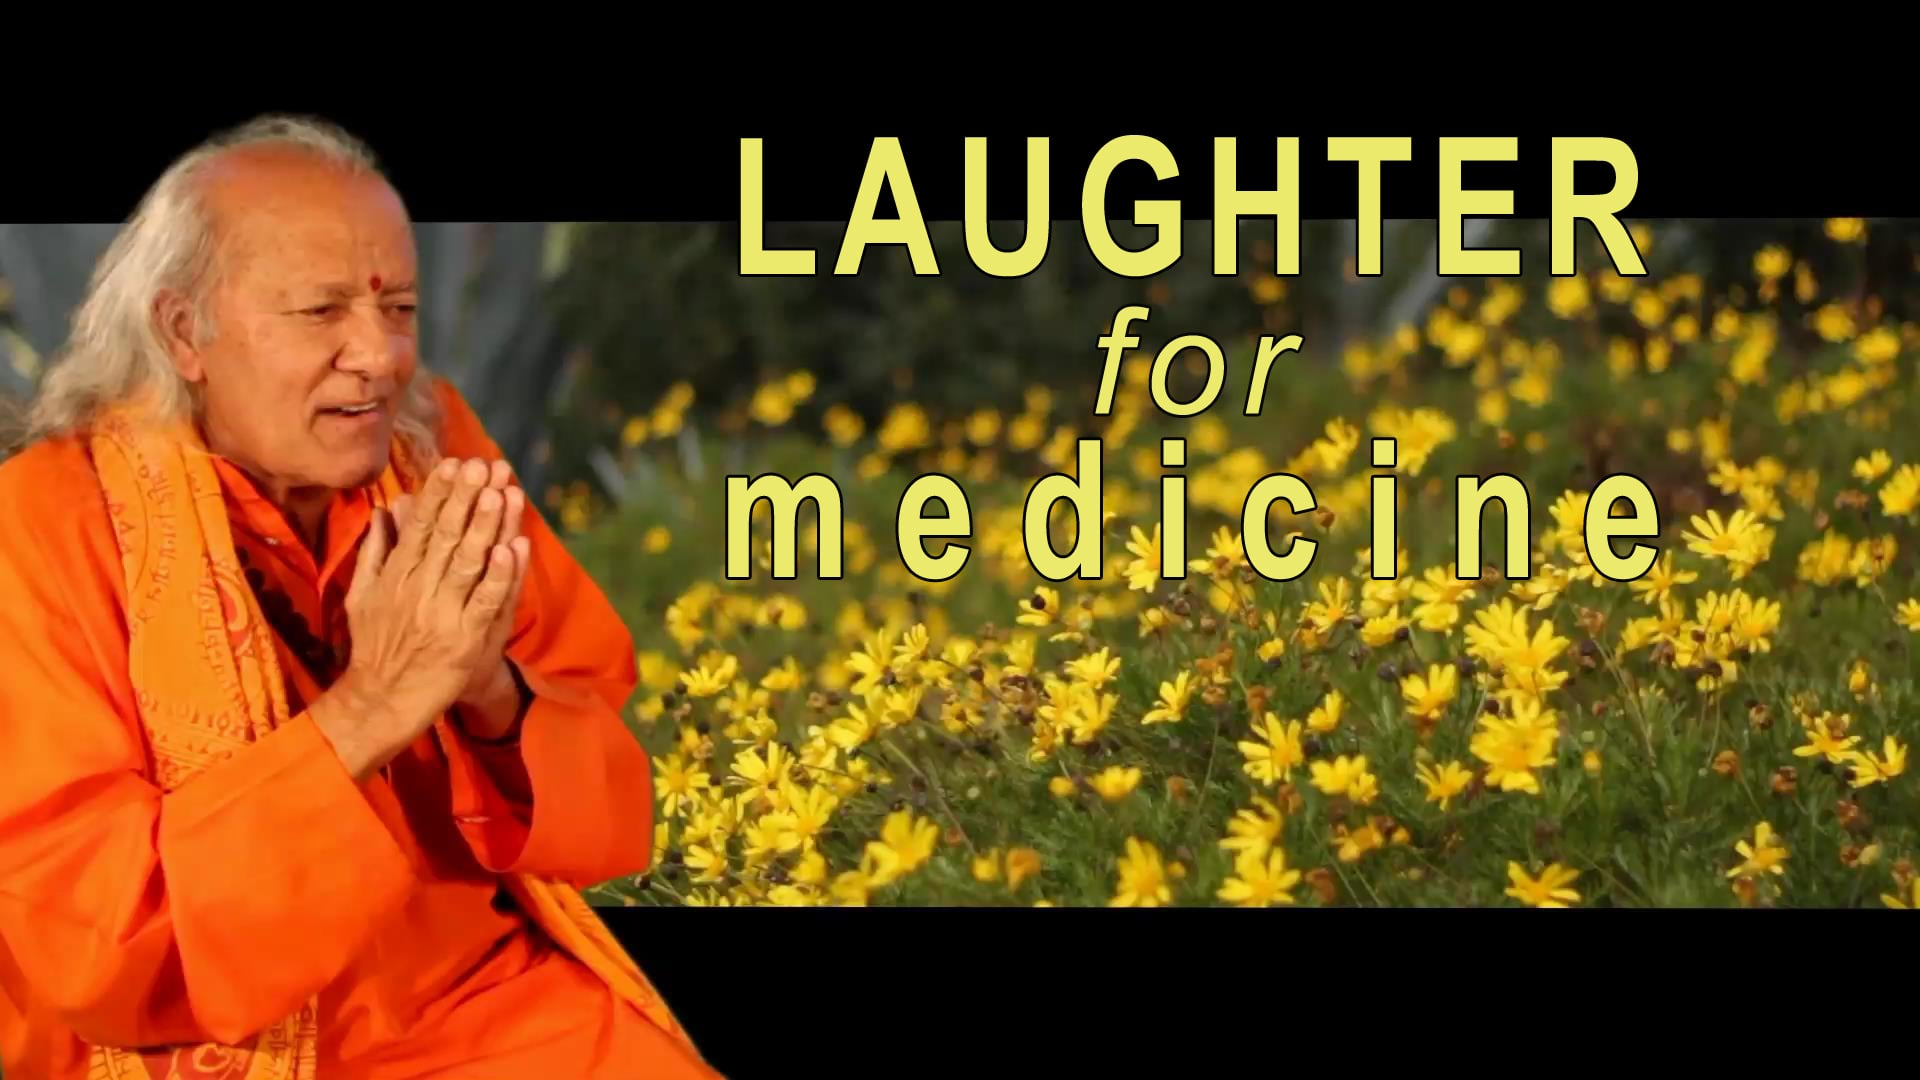 Laughter For Medicine